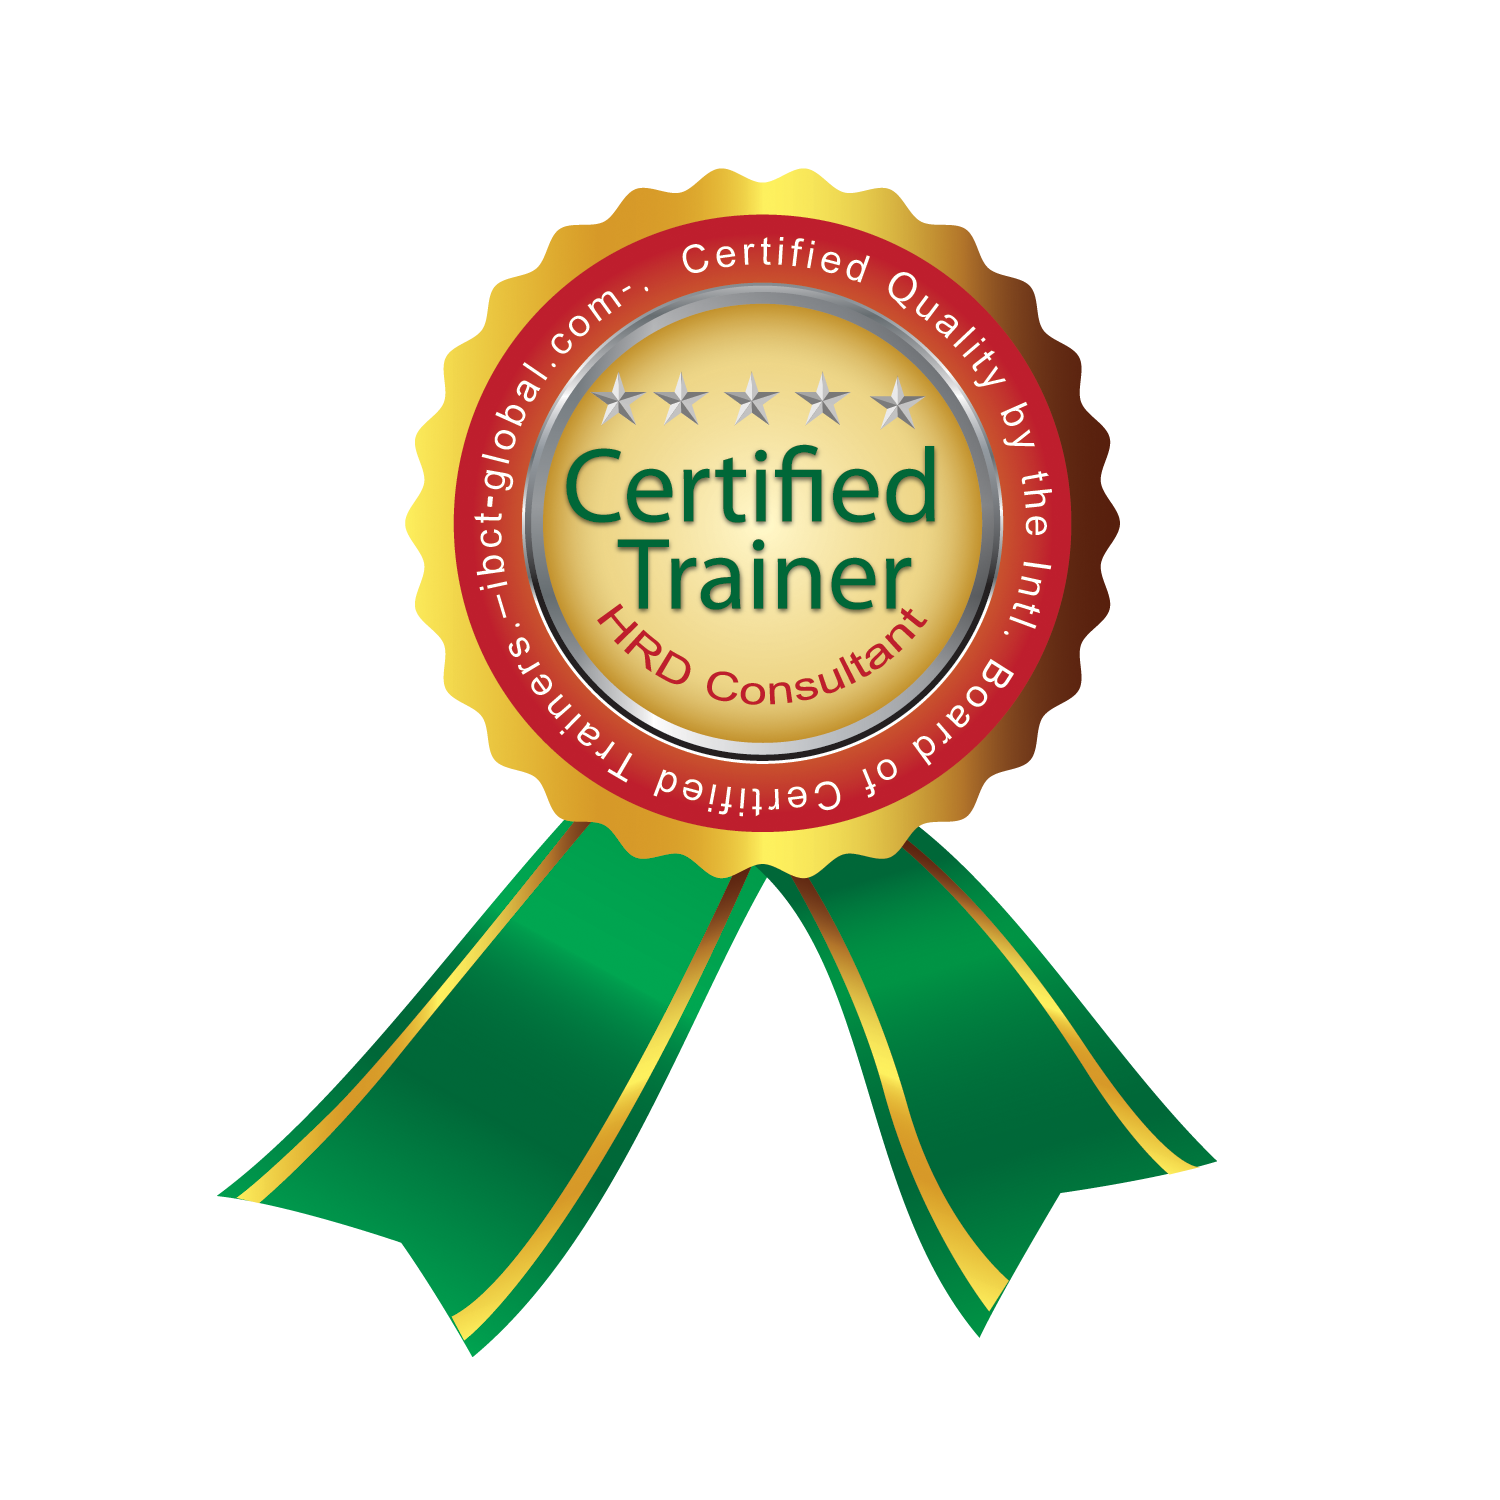 Corporate Trainer Certification And Certificate Programs ...